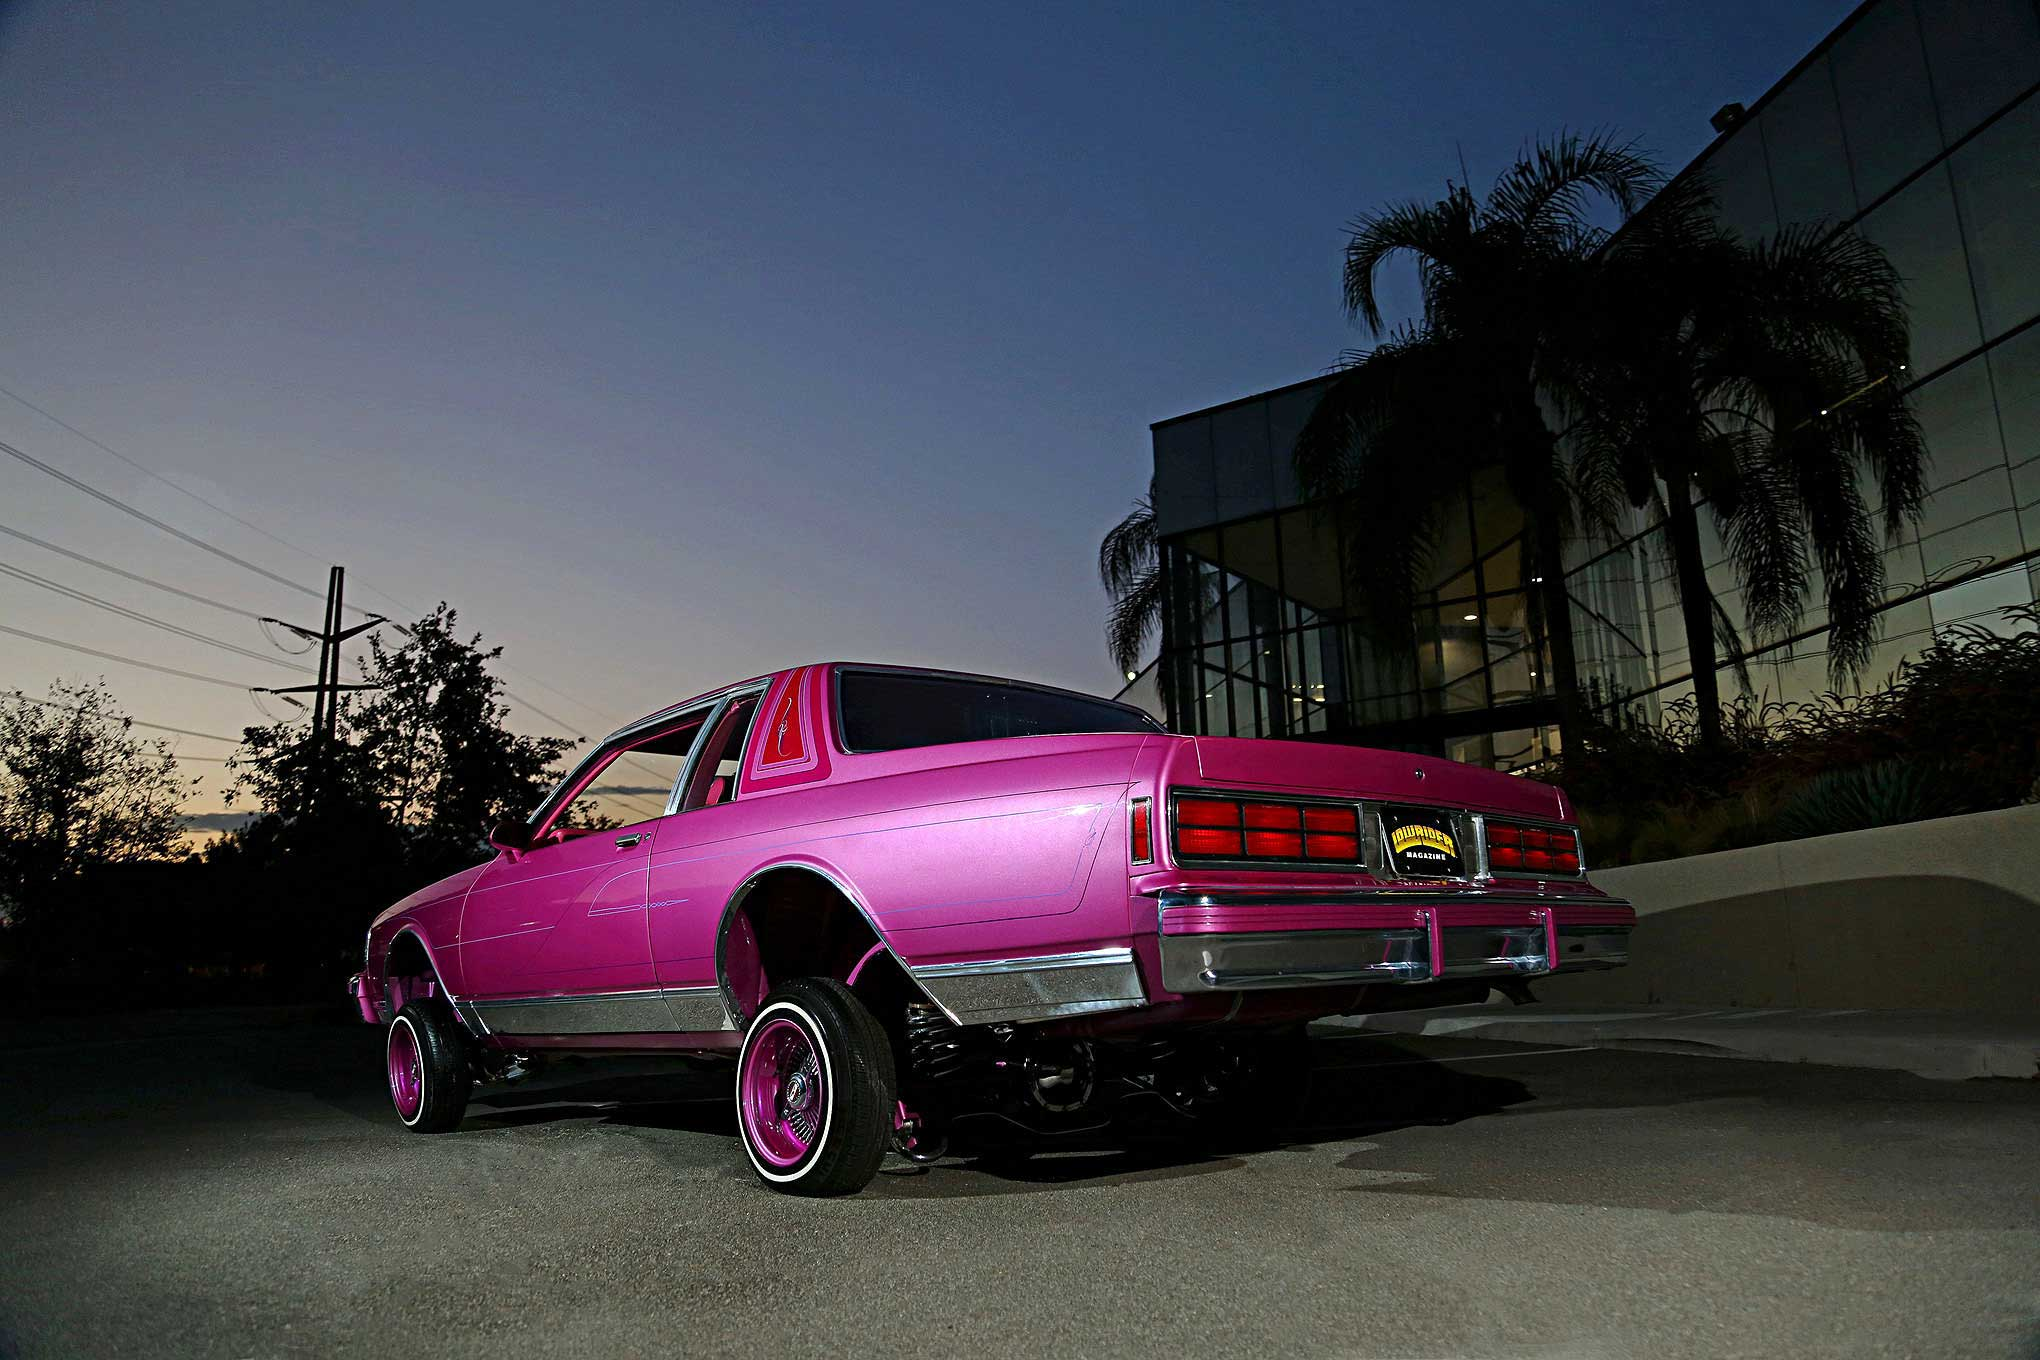 1986 Chevrolet Caprice - Backing it Up